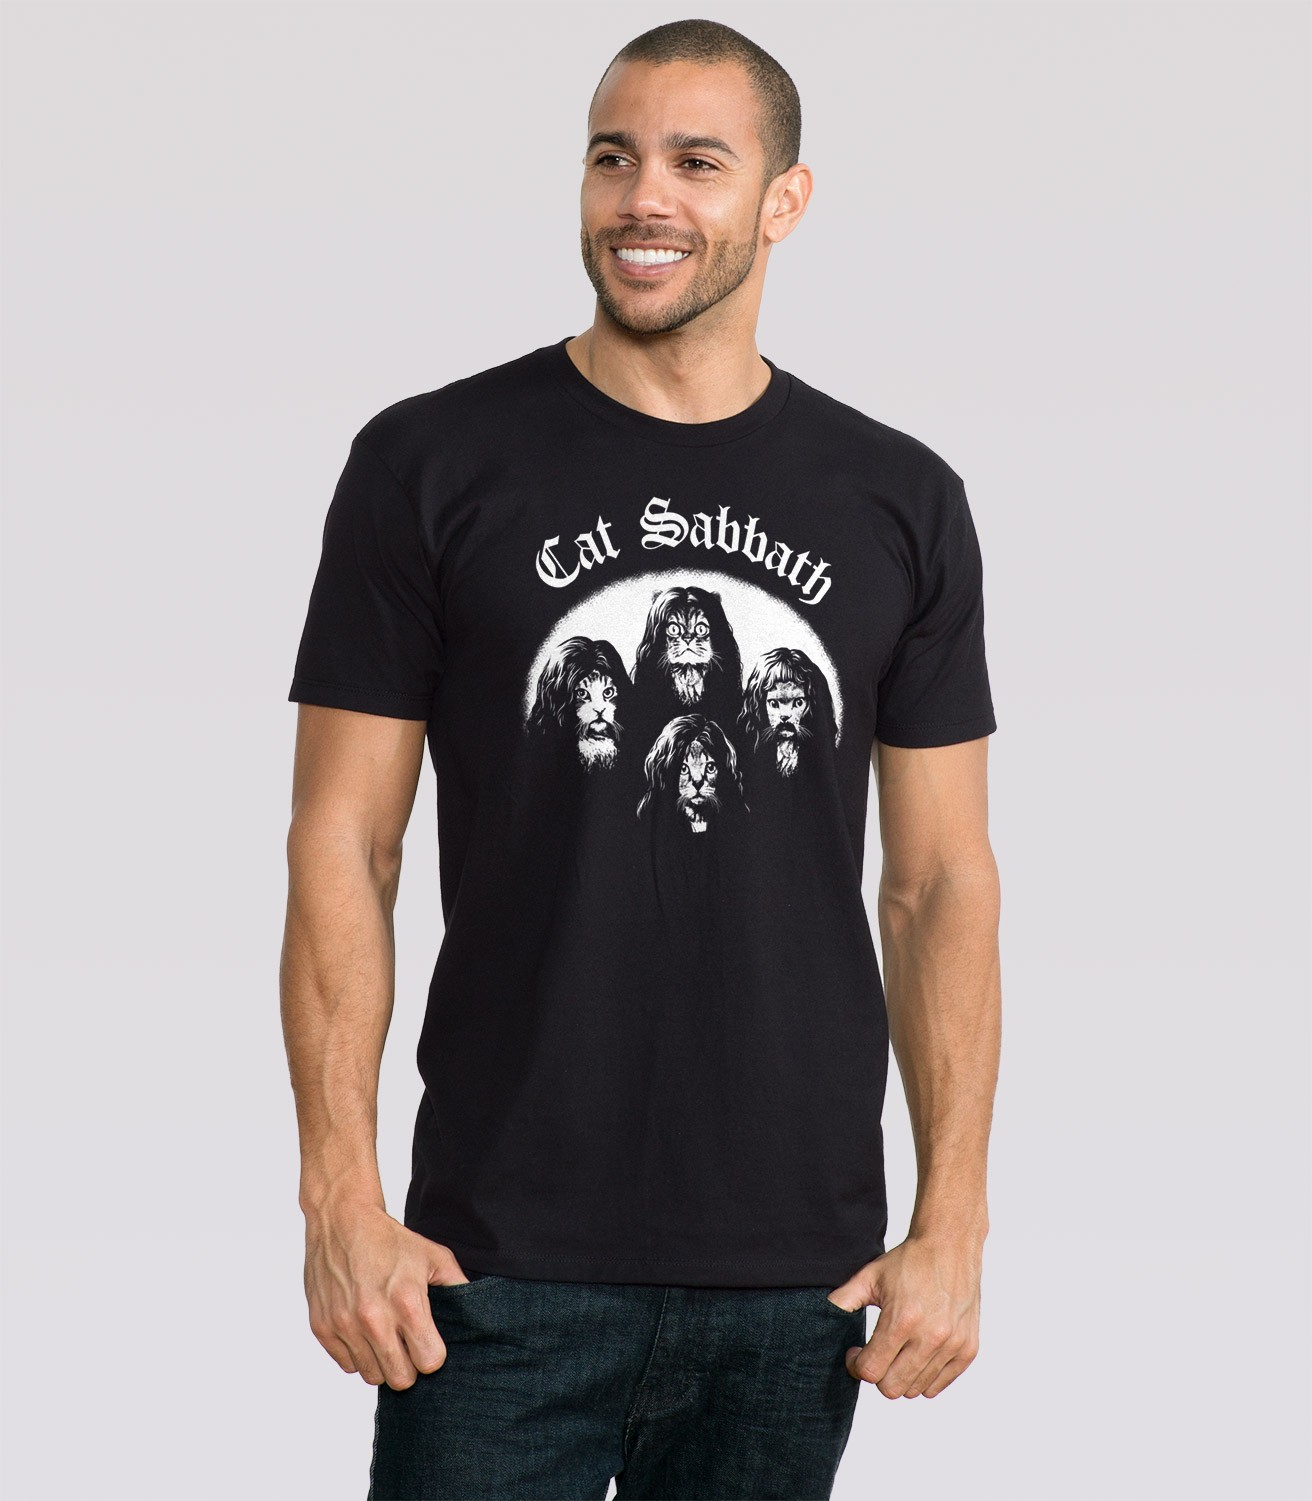 Cat Sabbath Men s Funny T Shirt